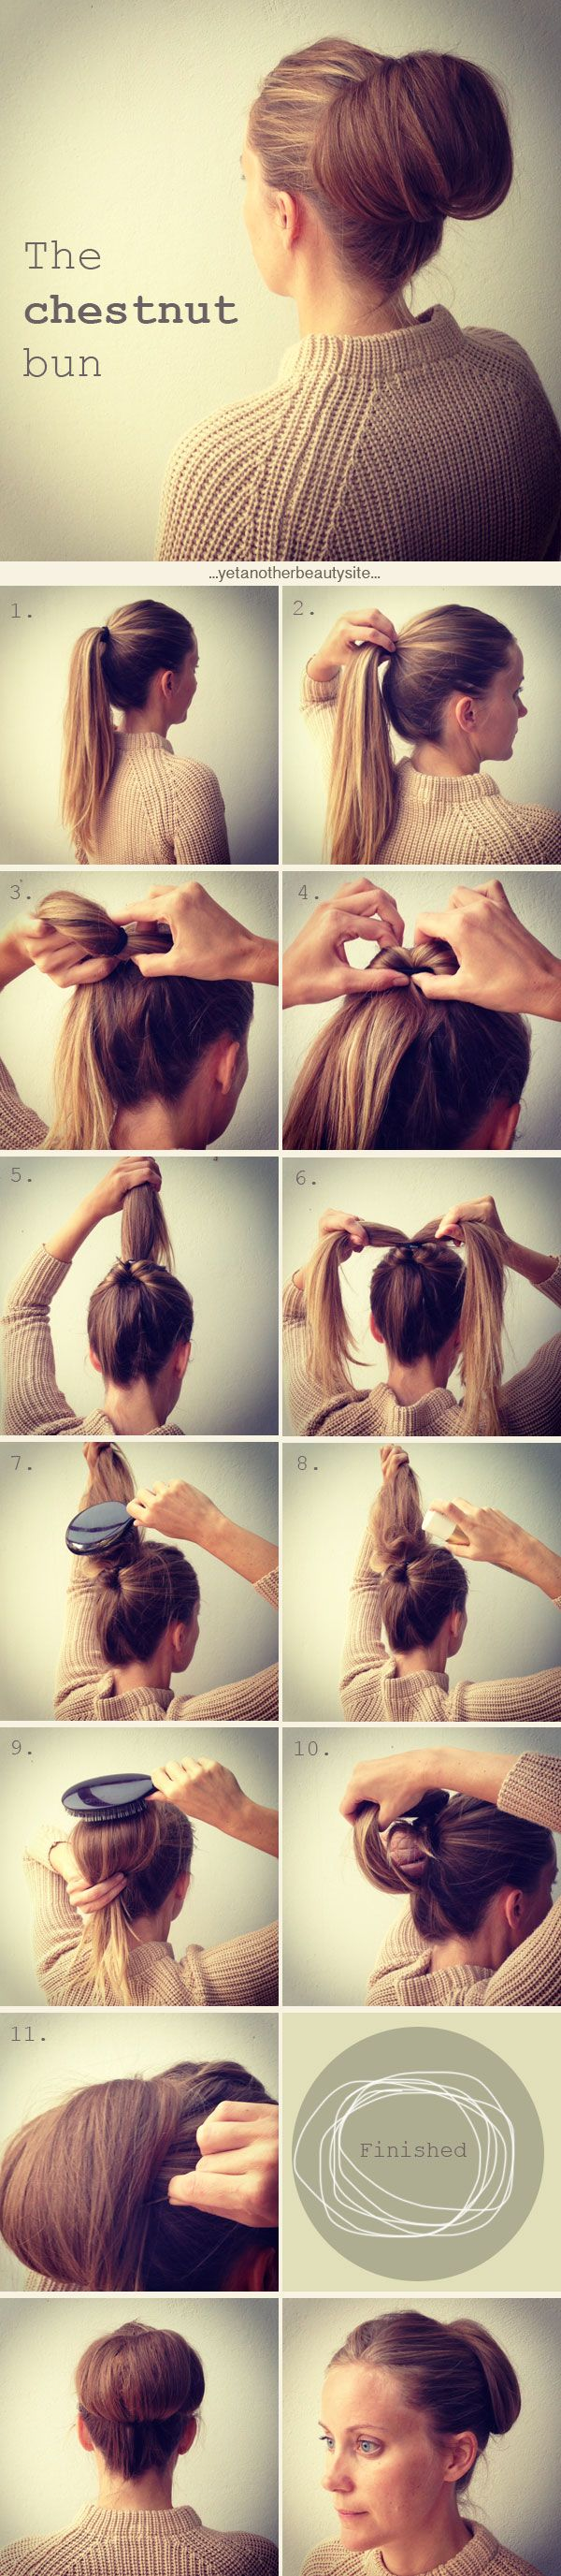 Pretty bun tutorial from the lovely @Dana Curtis Armstrong Hee Provost another beauty site!